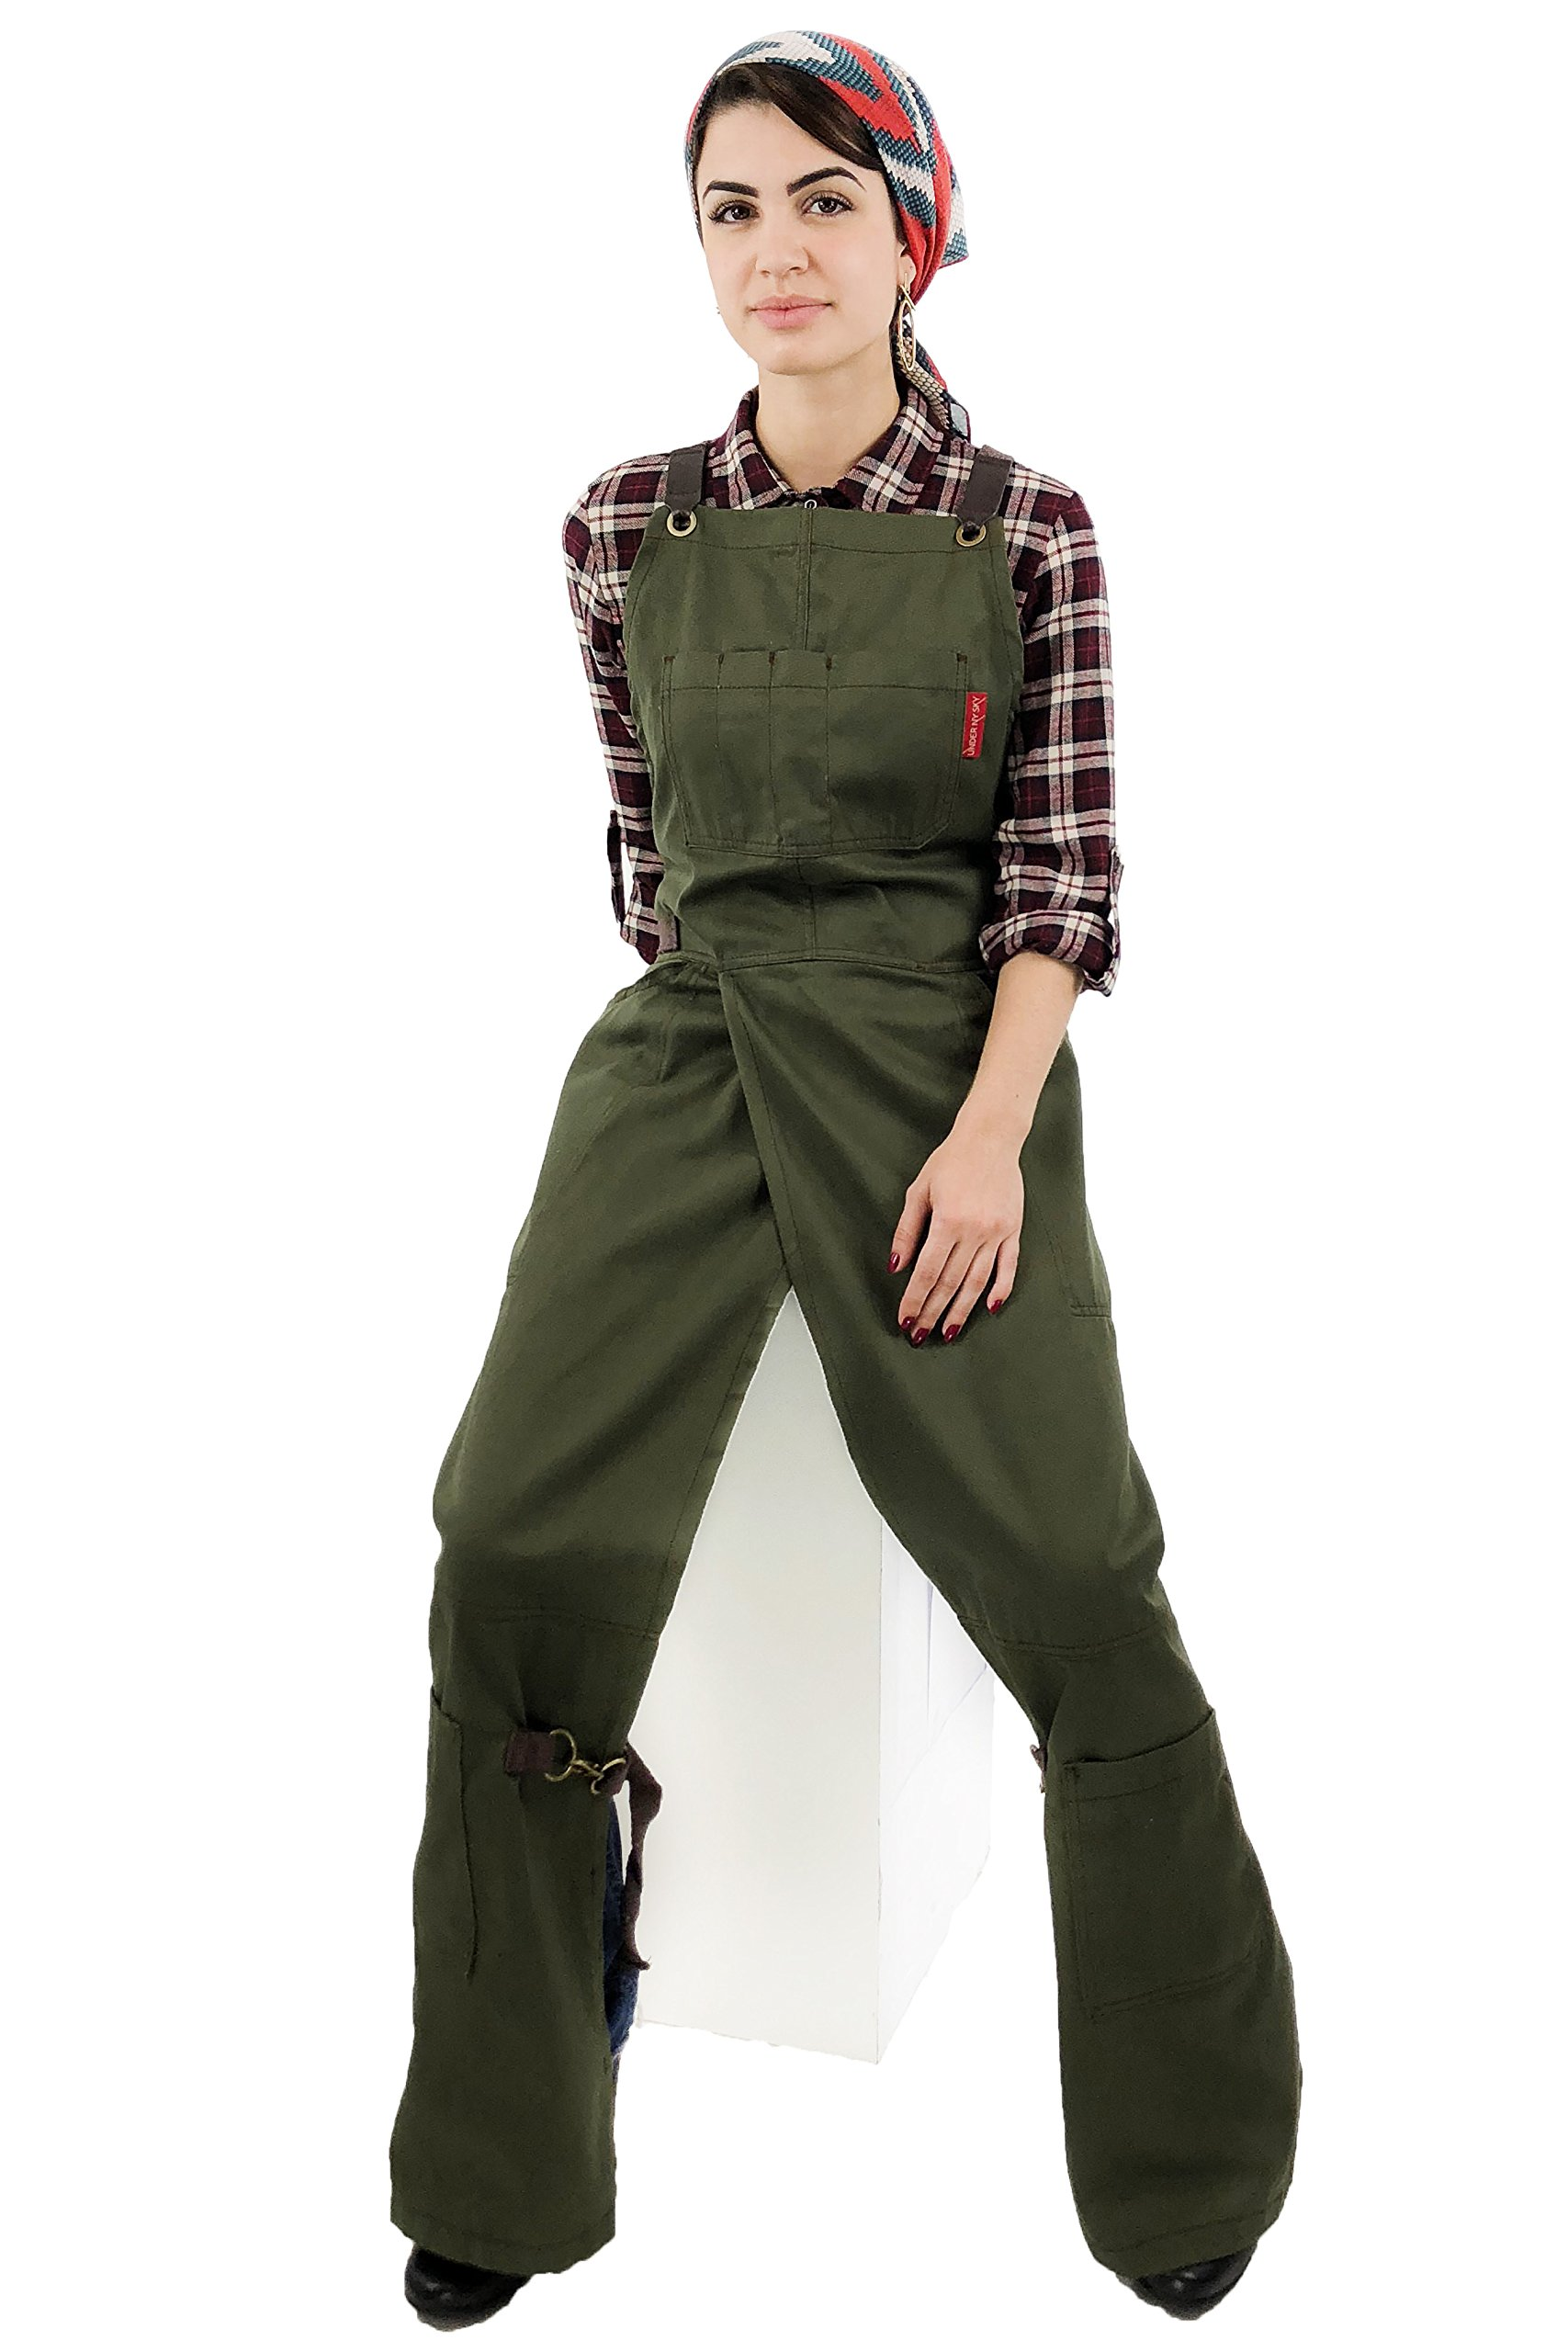 Under NY Sky Pottery Moss Green Apron - Full Coverage Cross-Back, Durable Twill, Leather Reinforcement and Overlapping Split-Leg, Adjustable for Men and Women - Pottery Artist, Mechanic, Tattoo Apron